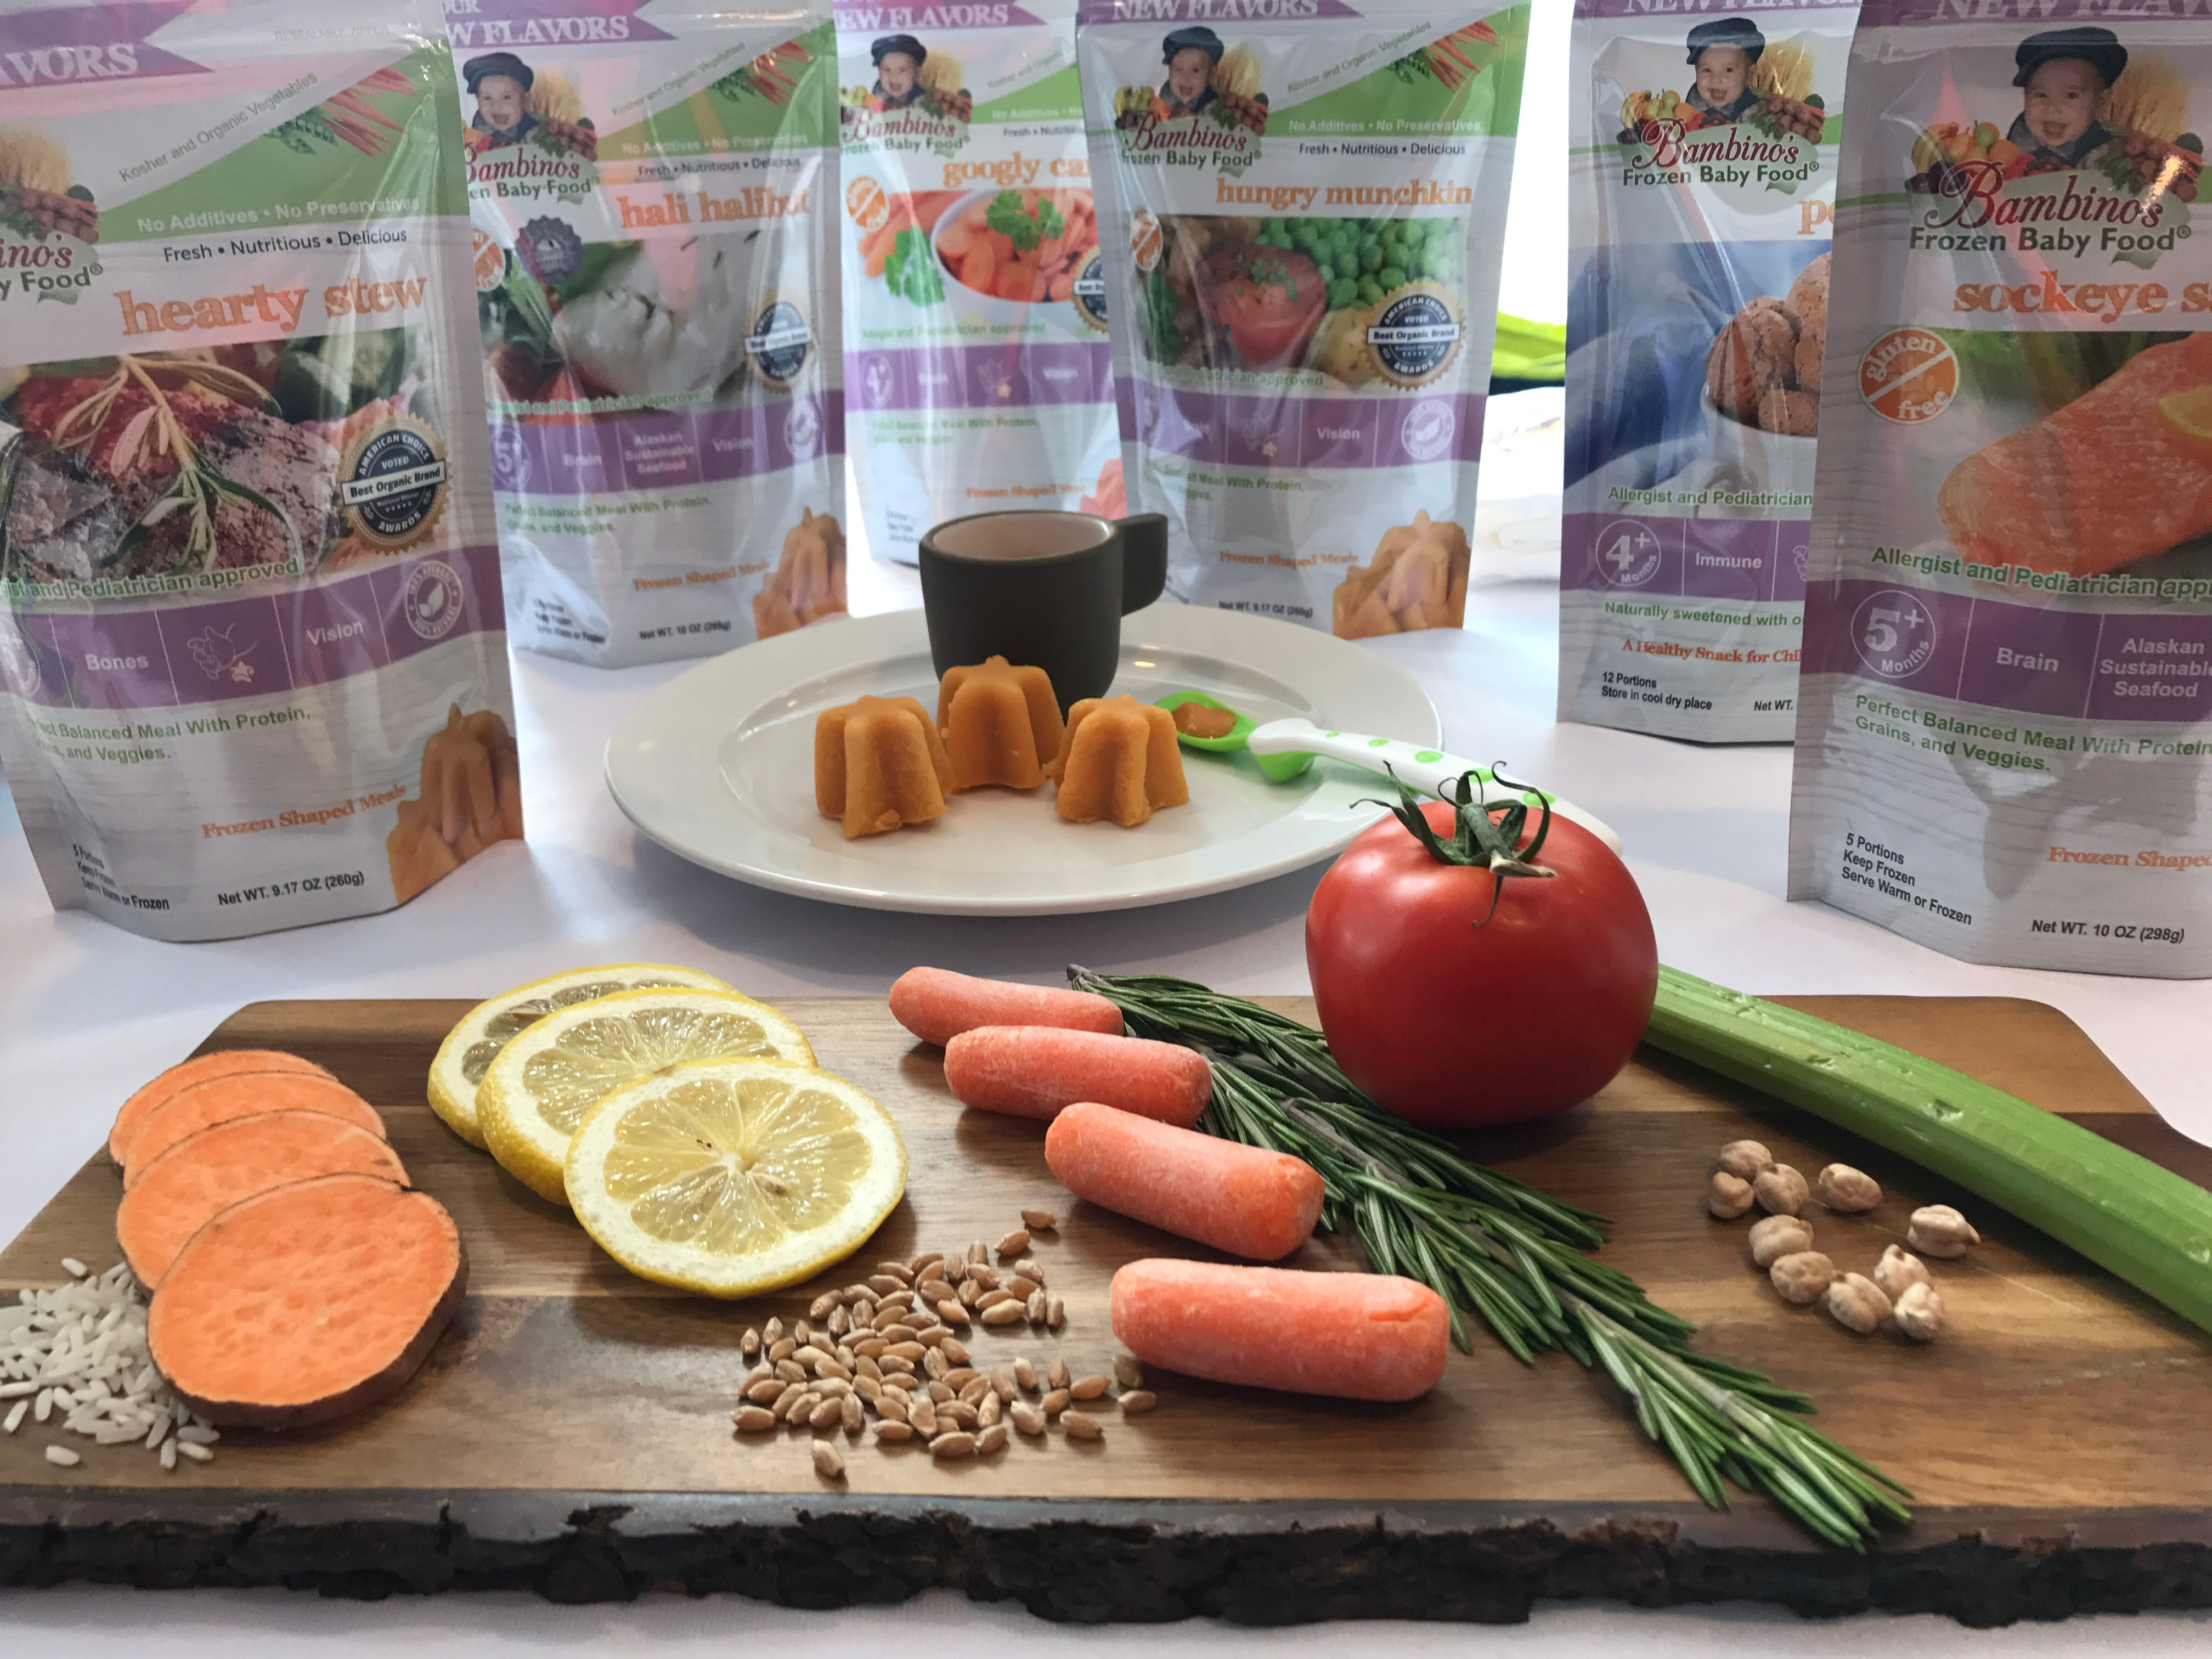 Bambinos Baby Infant Toddler Organic Protein vegetable foods. Beef, chicken salmon halibut carrot celery tomato puree solid kosher meals home delivery